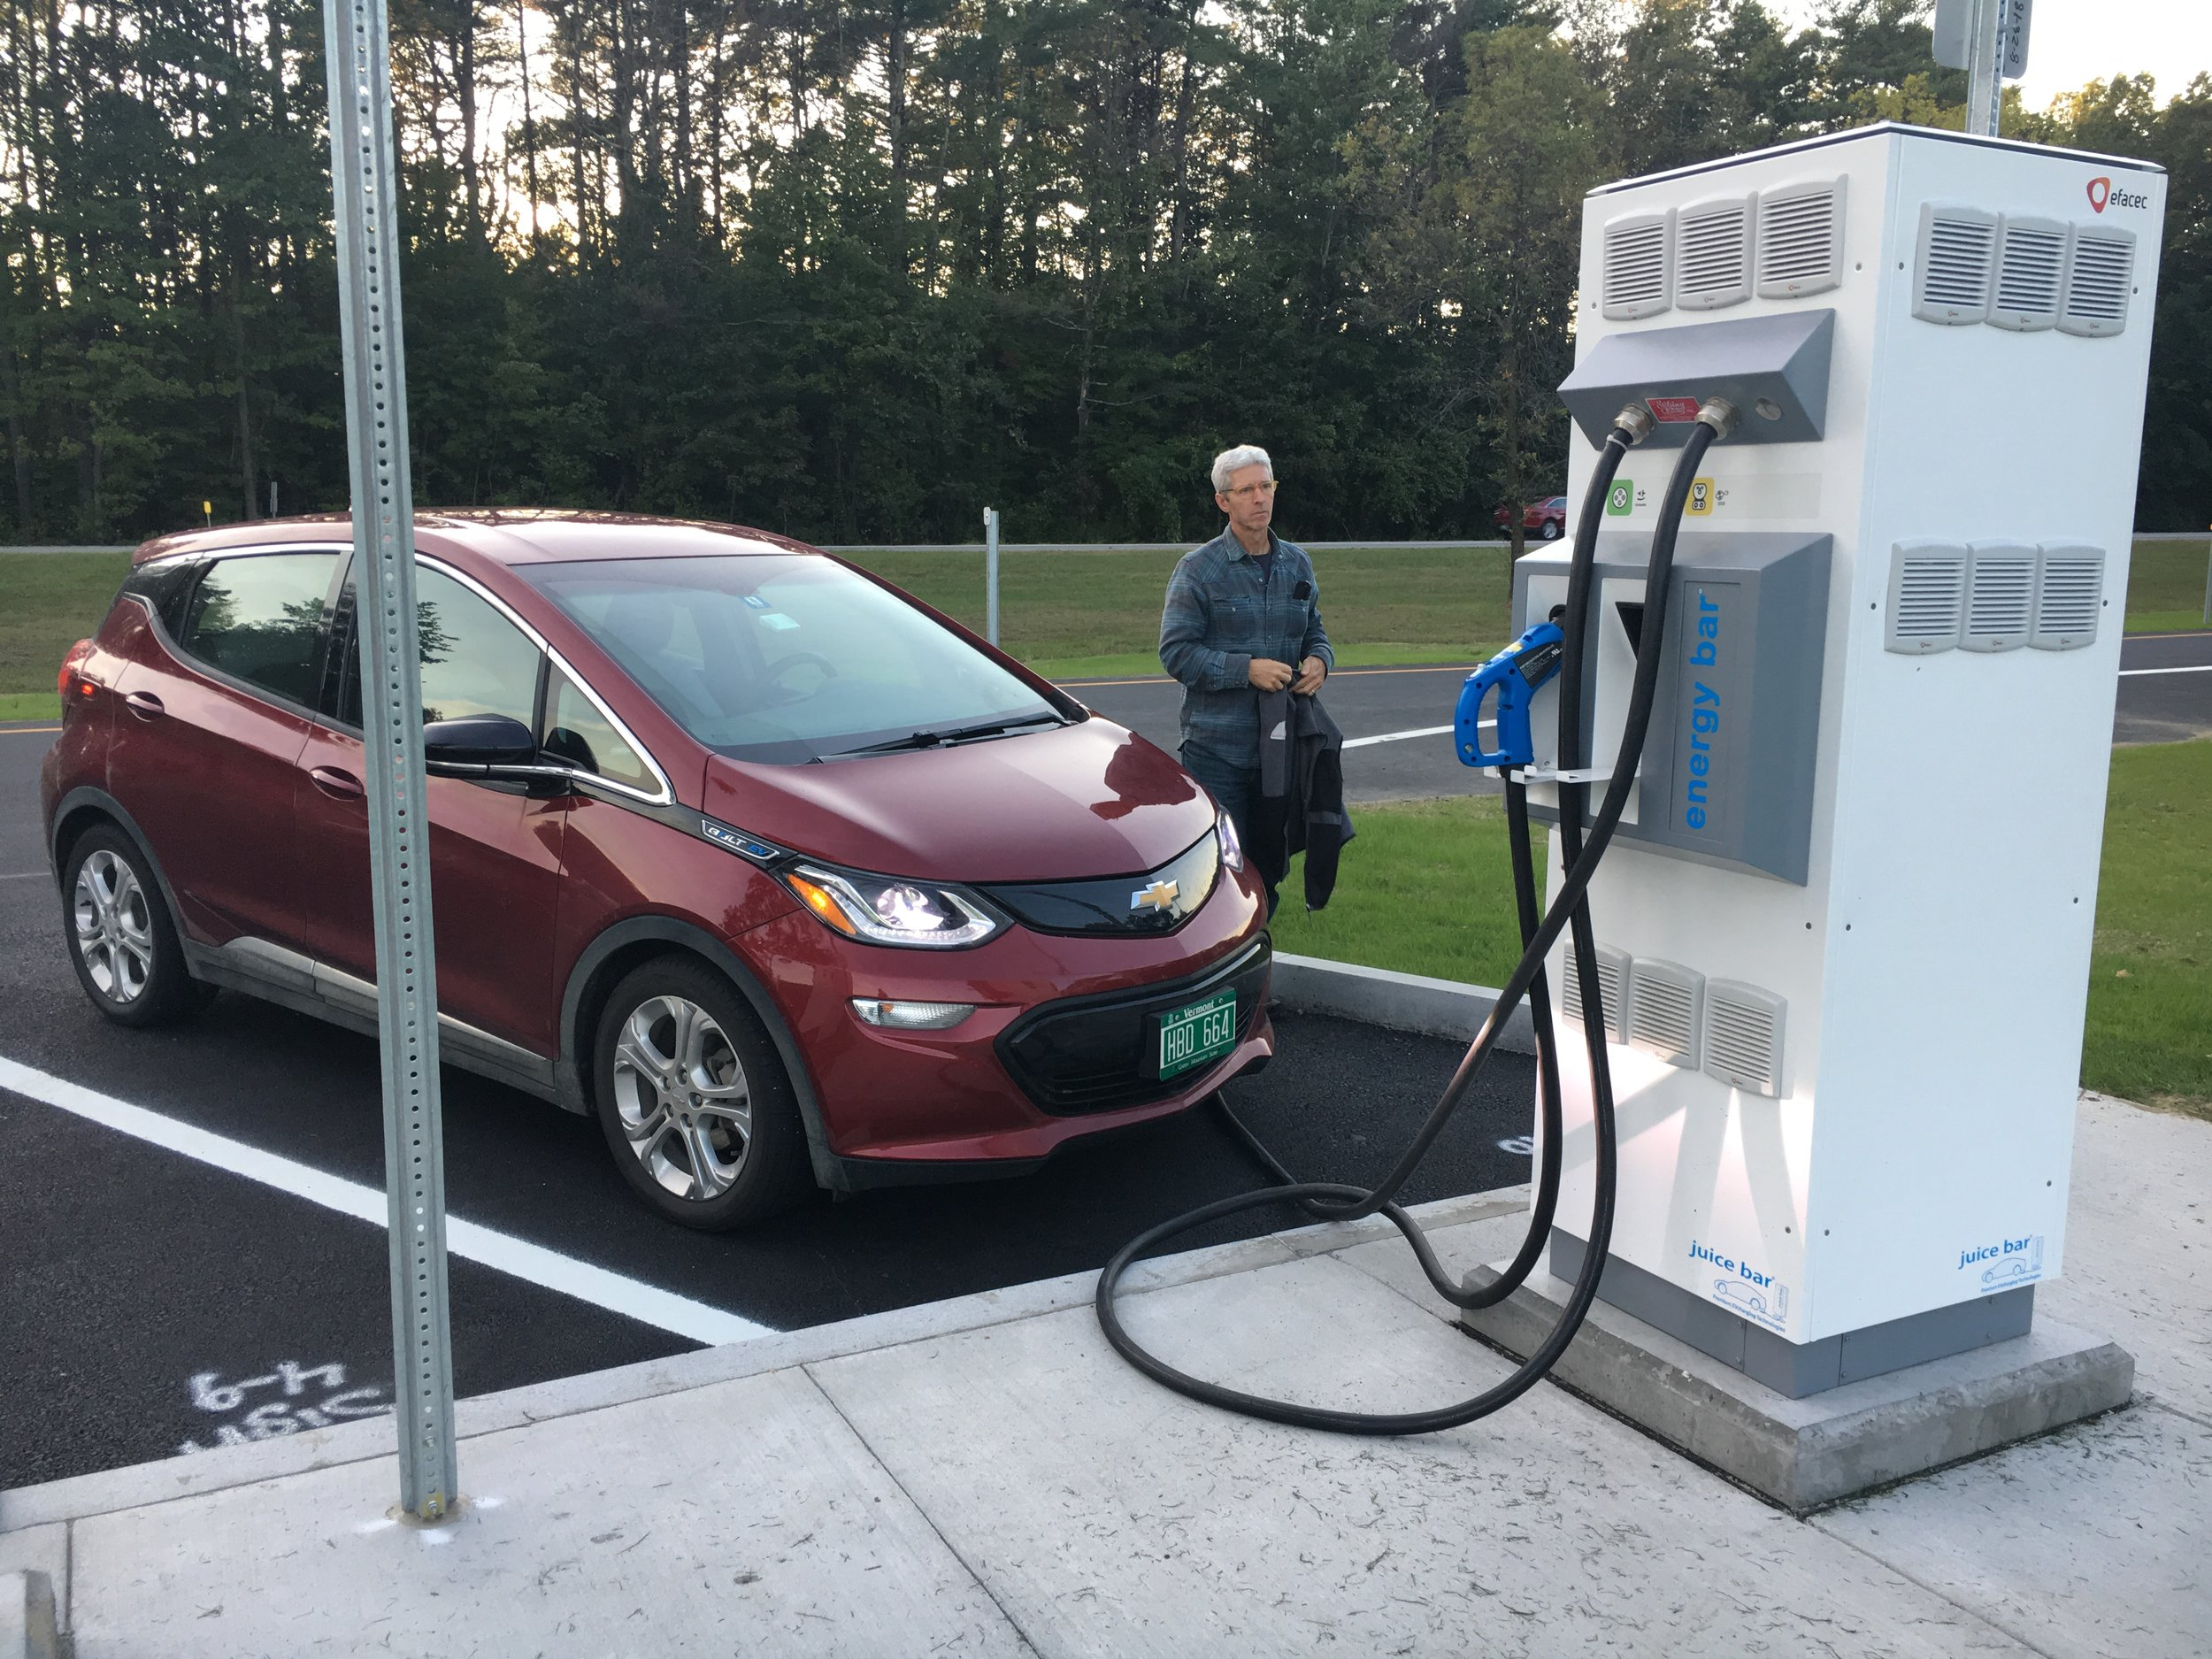 Widespread adoption of electric vehicles will require a network of charging stations in key locations.  Photo: Julie Campoli